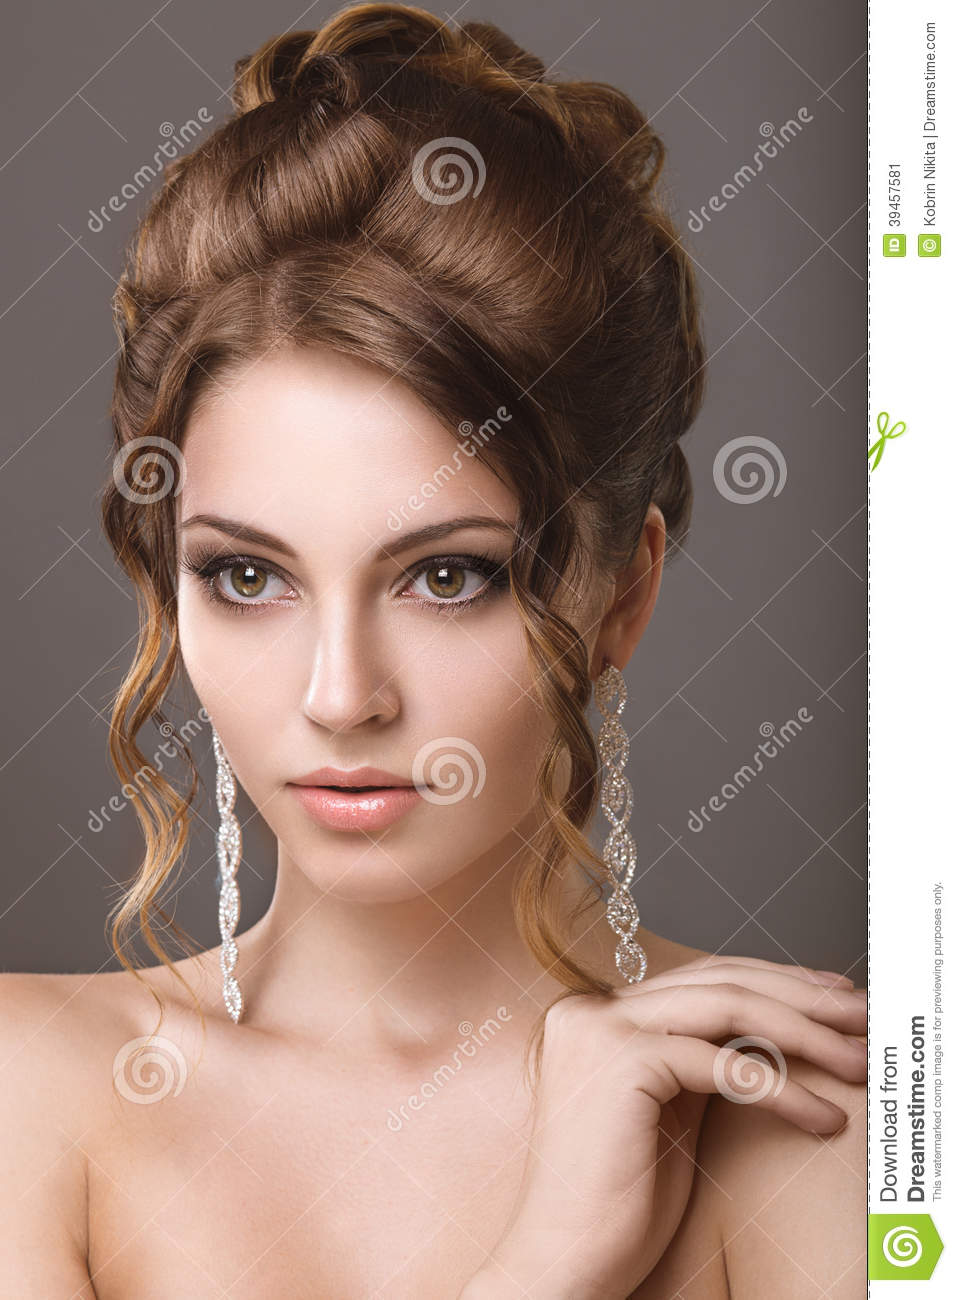 belle femme avec le maquillage et la coiffure de soir e photo stock image 39457581. Black Bedroom Furniture Sets. Home Design Ideas